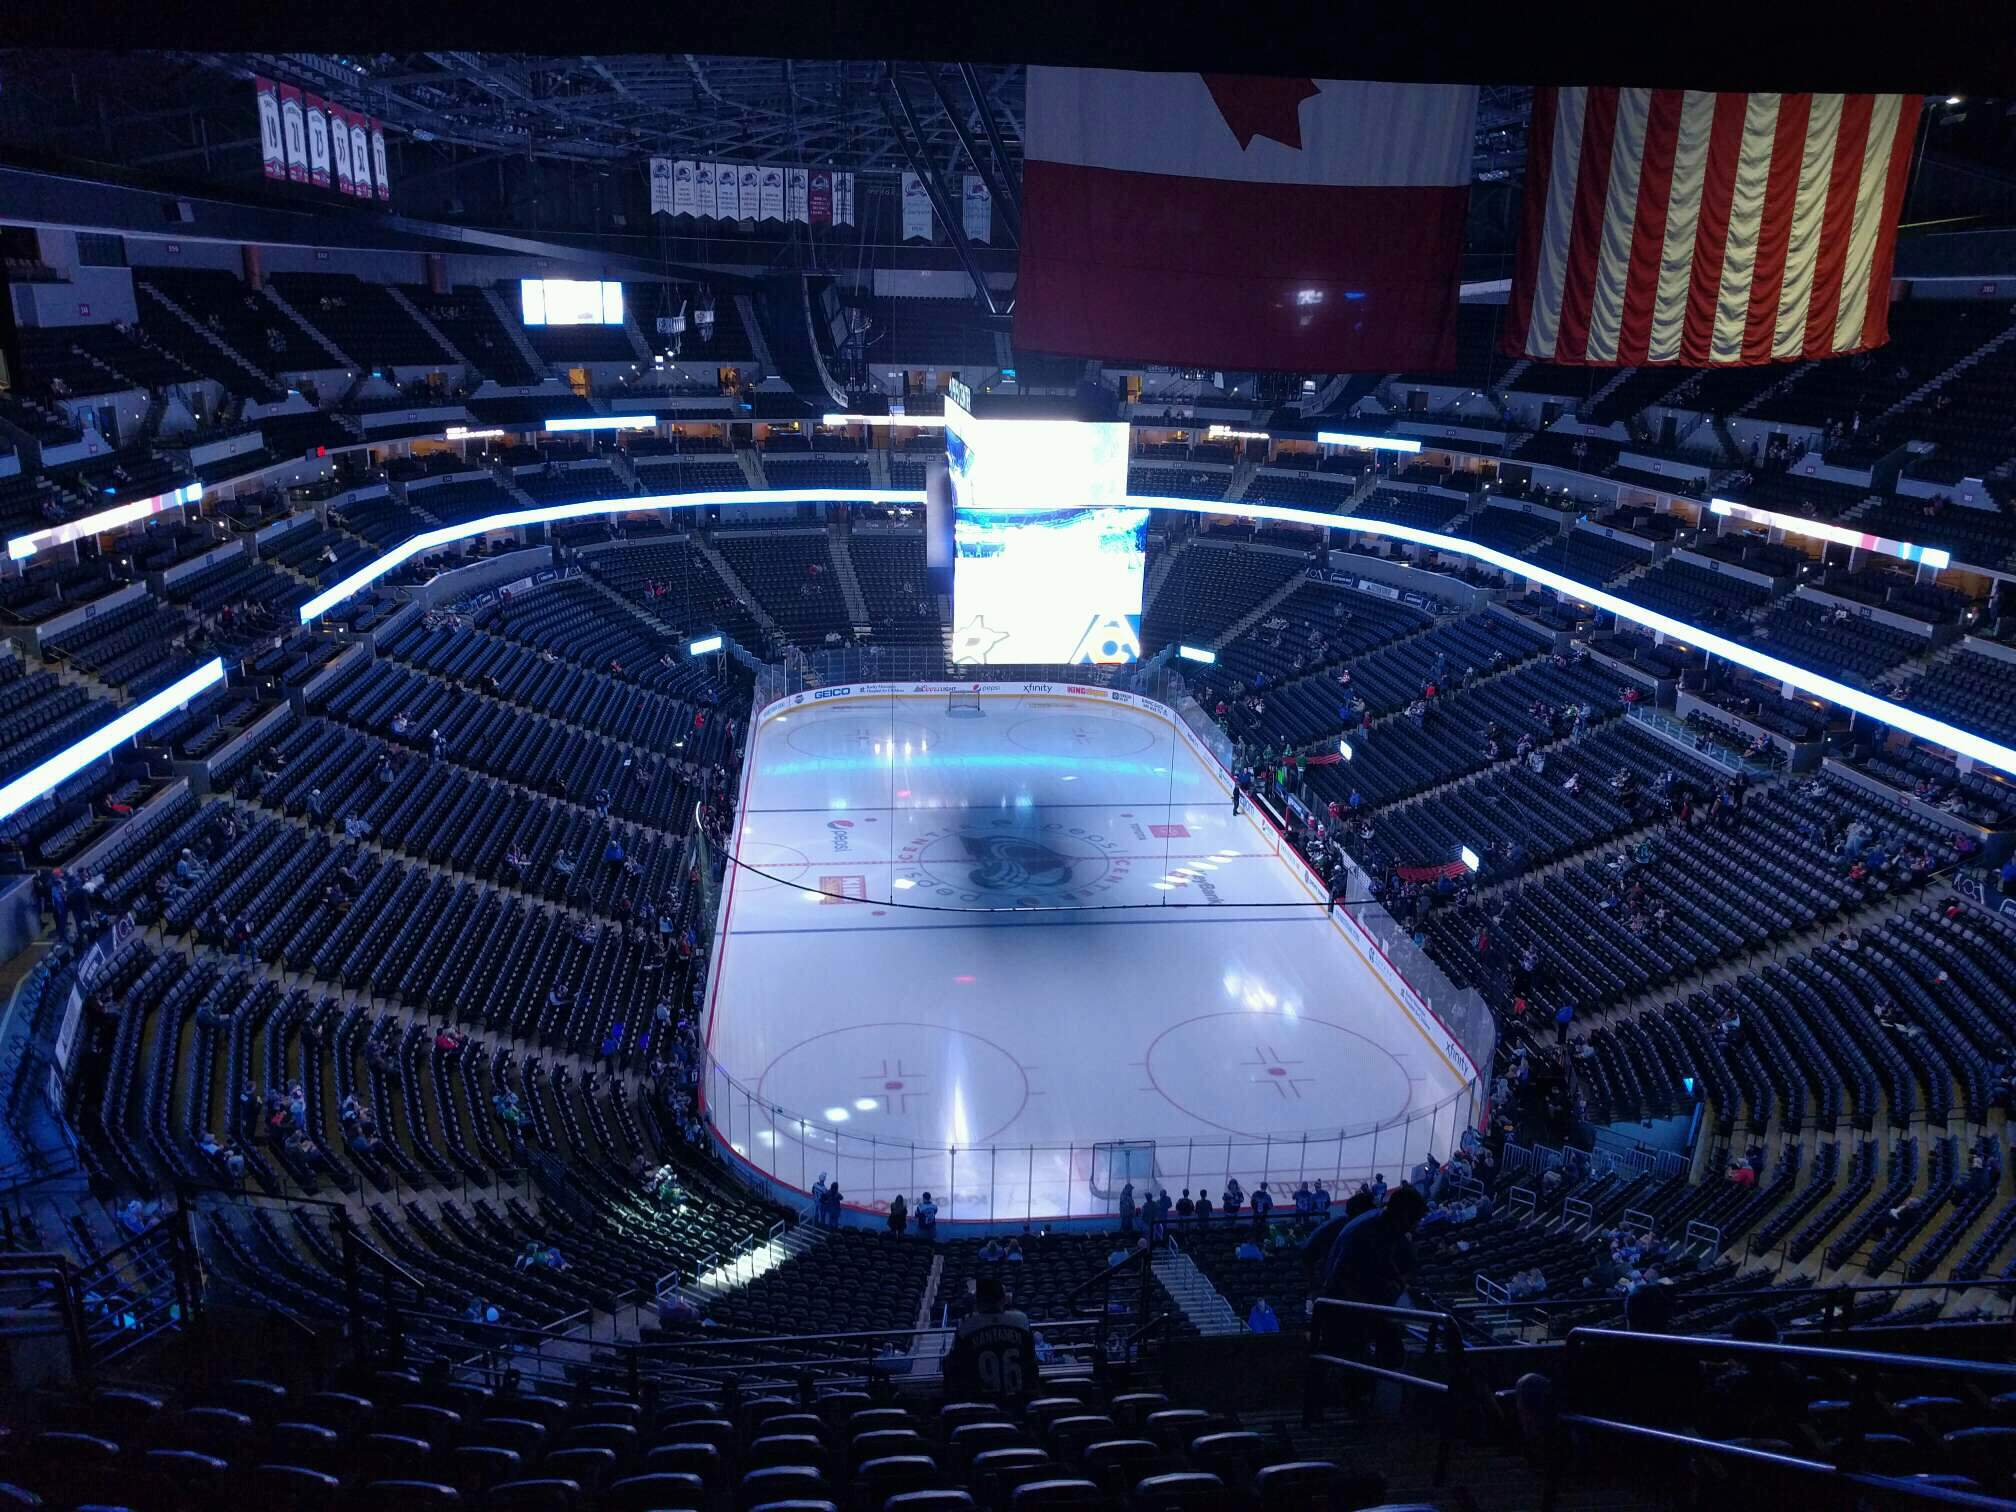 Ball Arena Section 324 Row 14 Seat 5